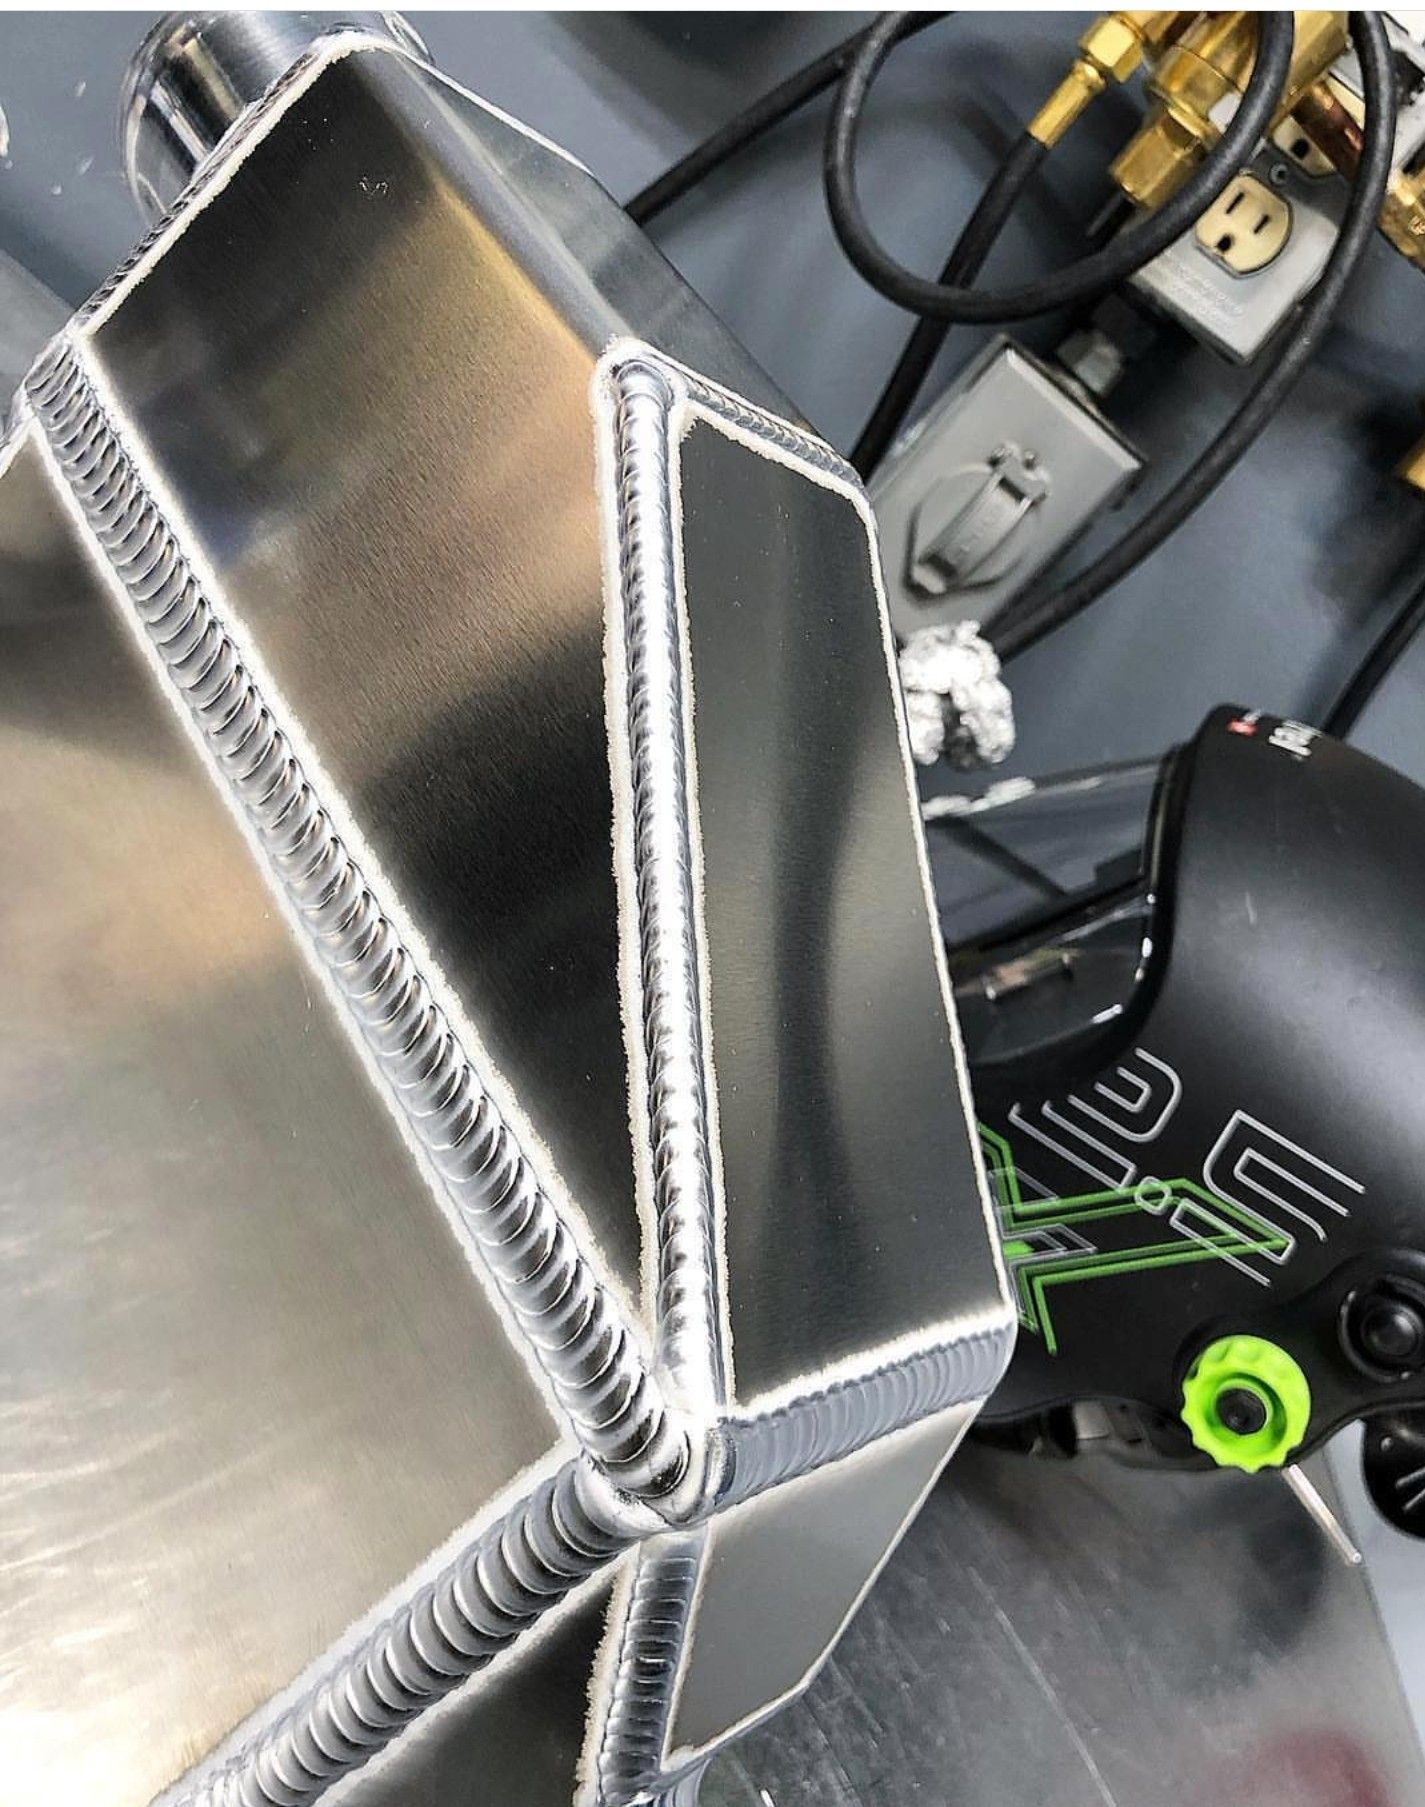 Pin by Kevin Smith on Tig welding aluminum in 2020